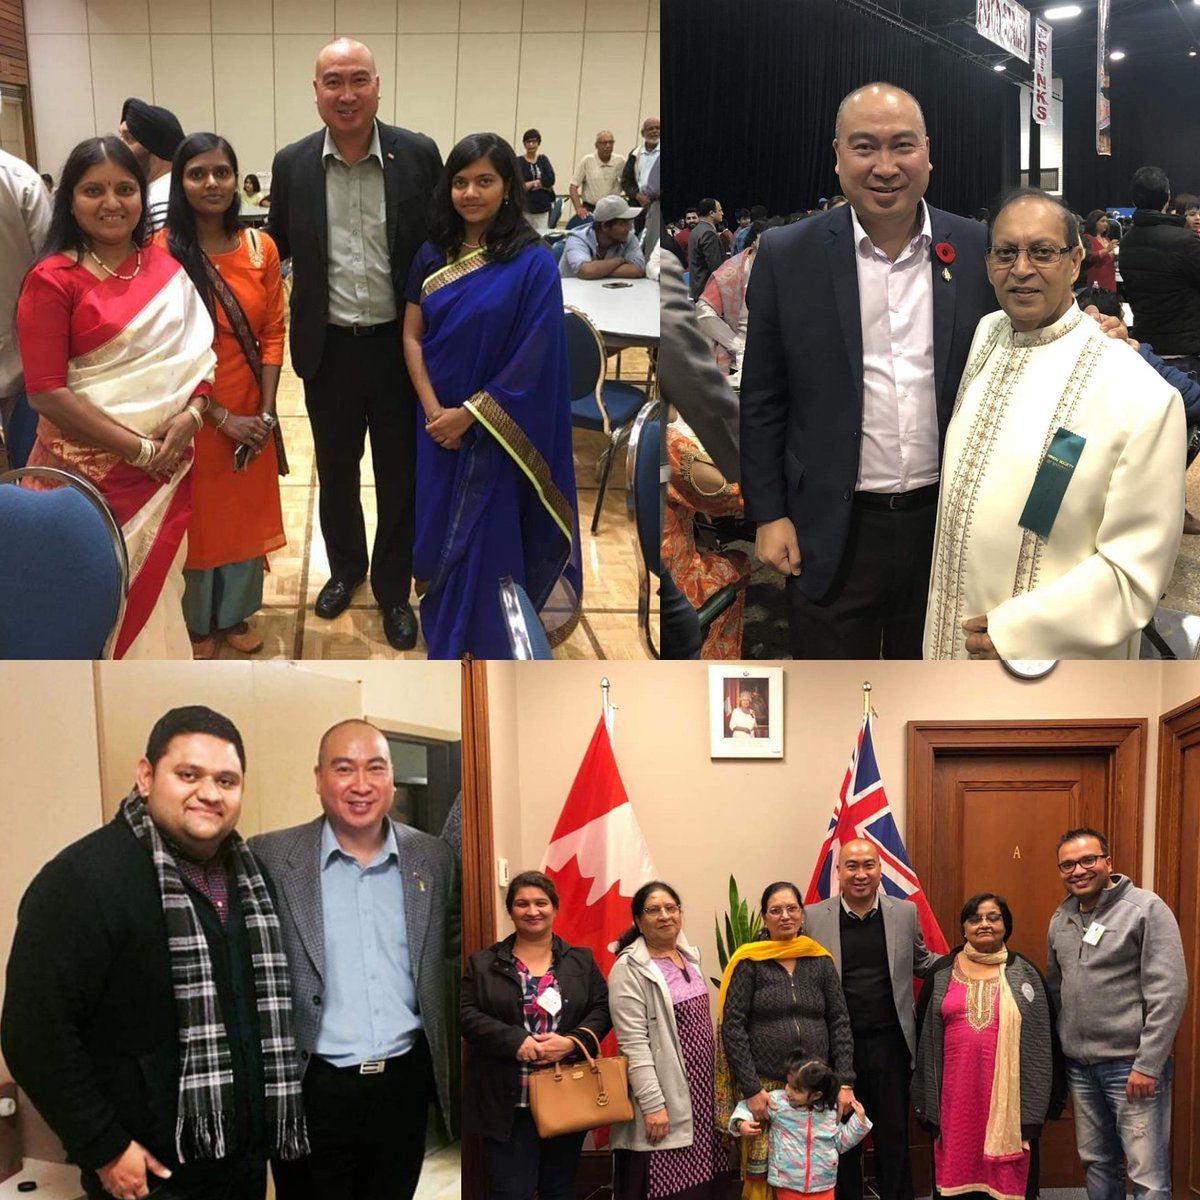 test Twitter Media - I wish all of my Indian friends a very Happy Republic Day! They have brought time honoured traditions and principles from the world's largest democracy, which have enriched Manitoba. #JaiHind 🇮🇳 #RepublicDay2019 #mbpoli https://t.co/AyX4KlyR9X